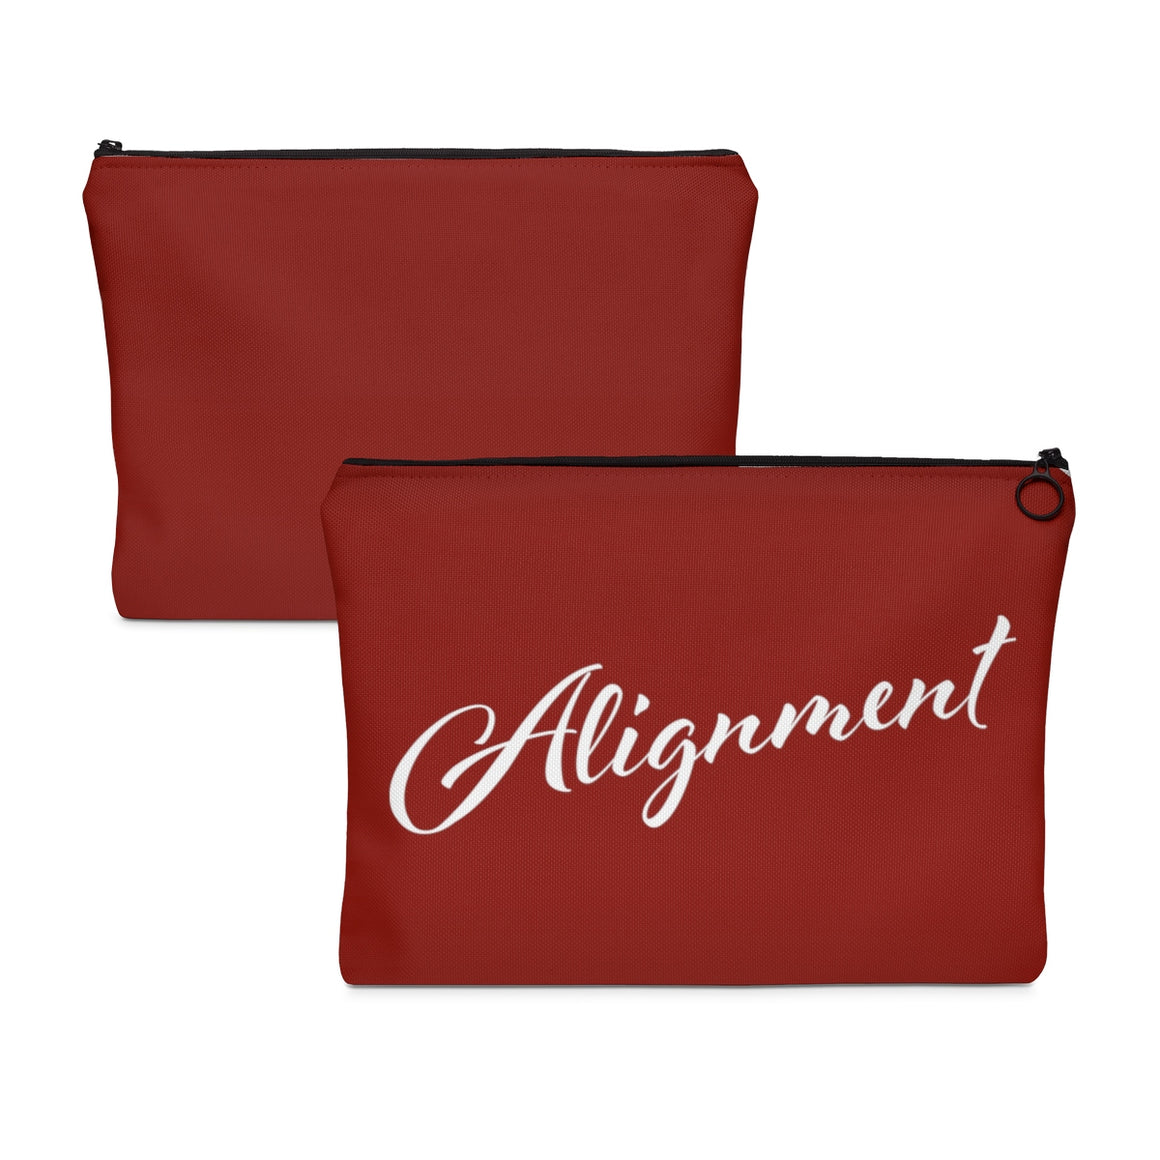 Alignment Pouch